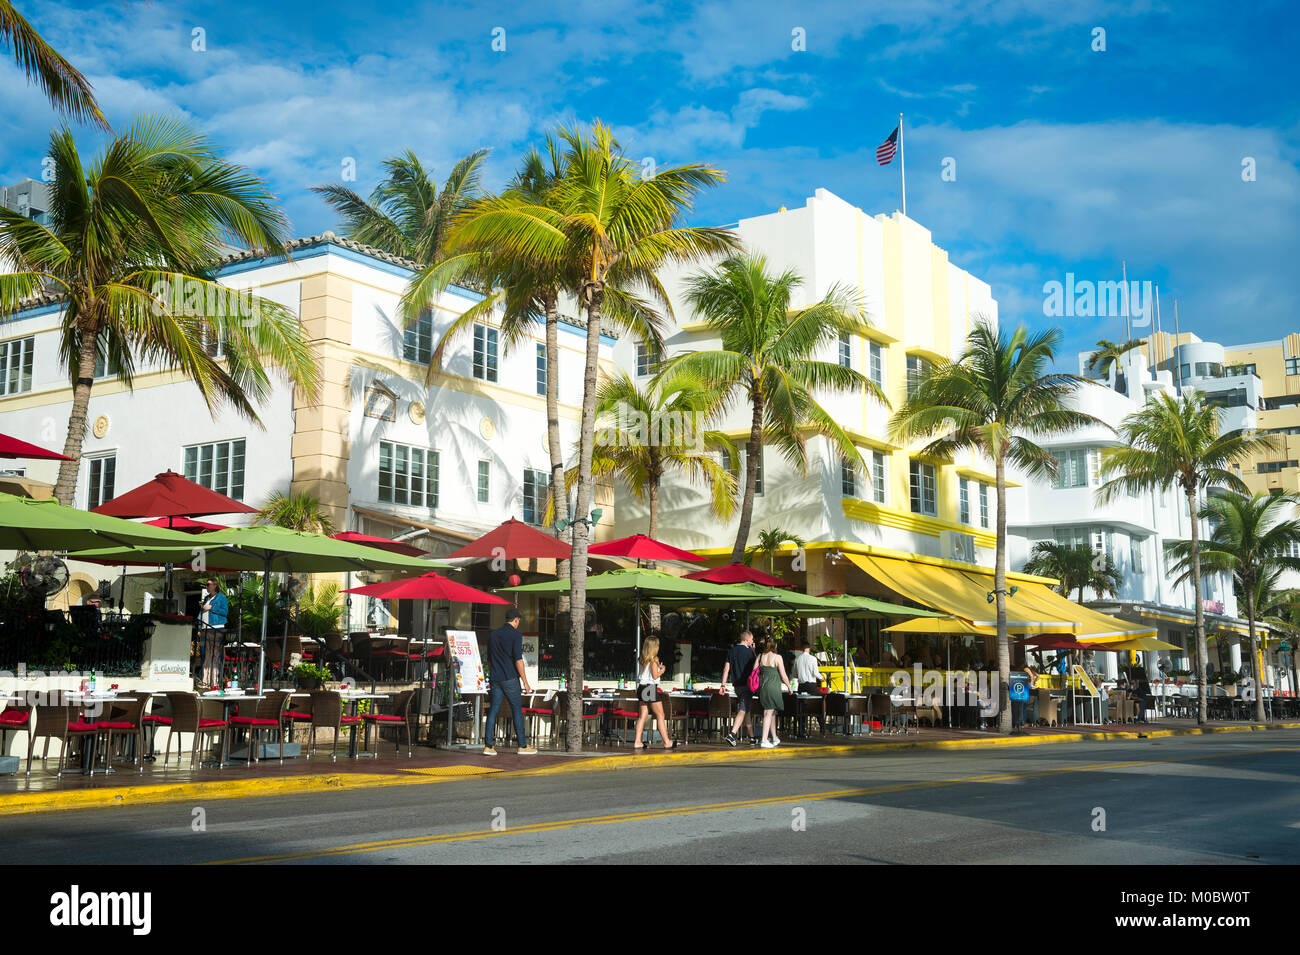 Miami January 12 2018 Restaurants On The Tourist Strip